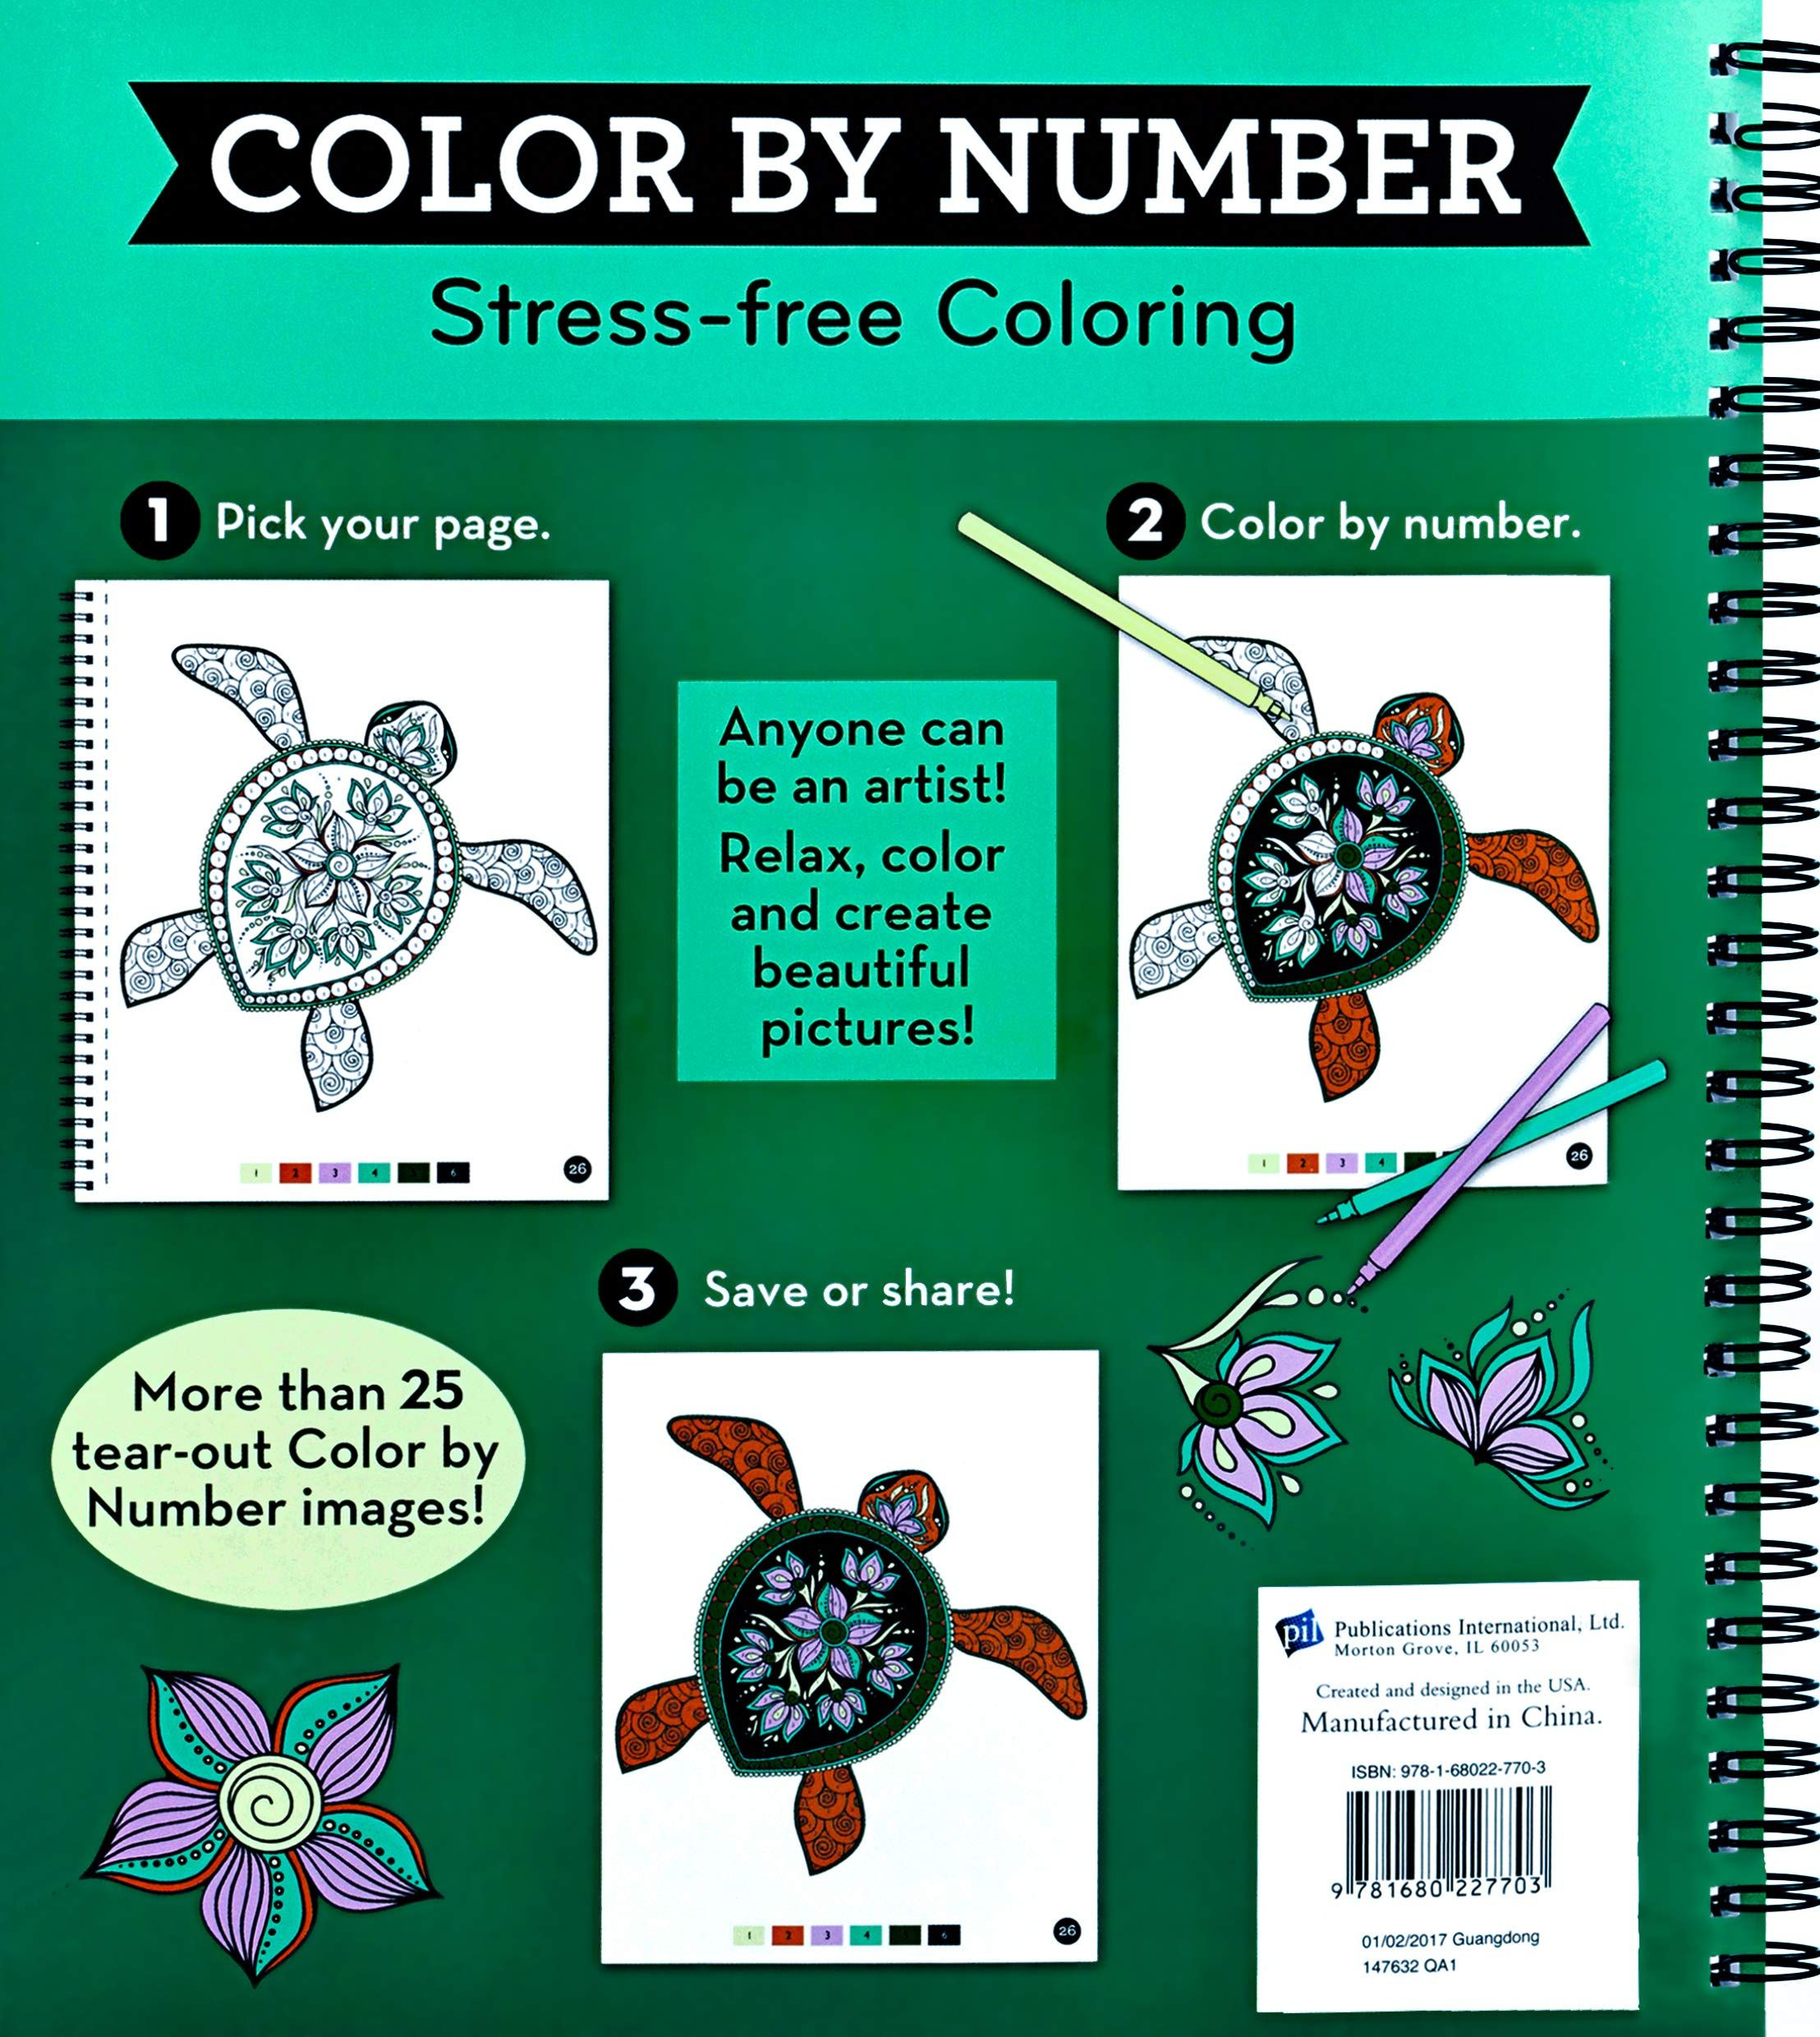 Brain Games Color by Number StressFree Coloring (Green